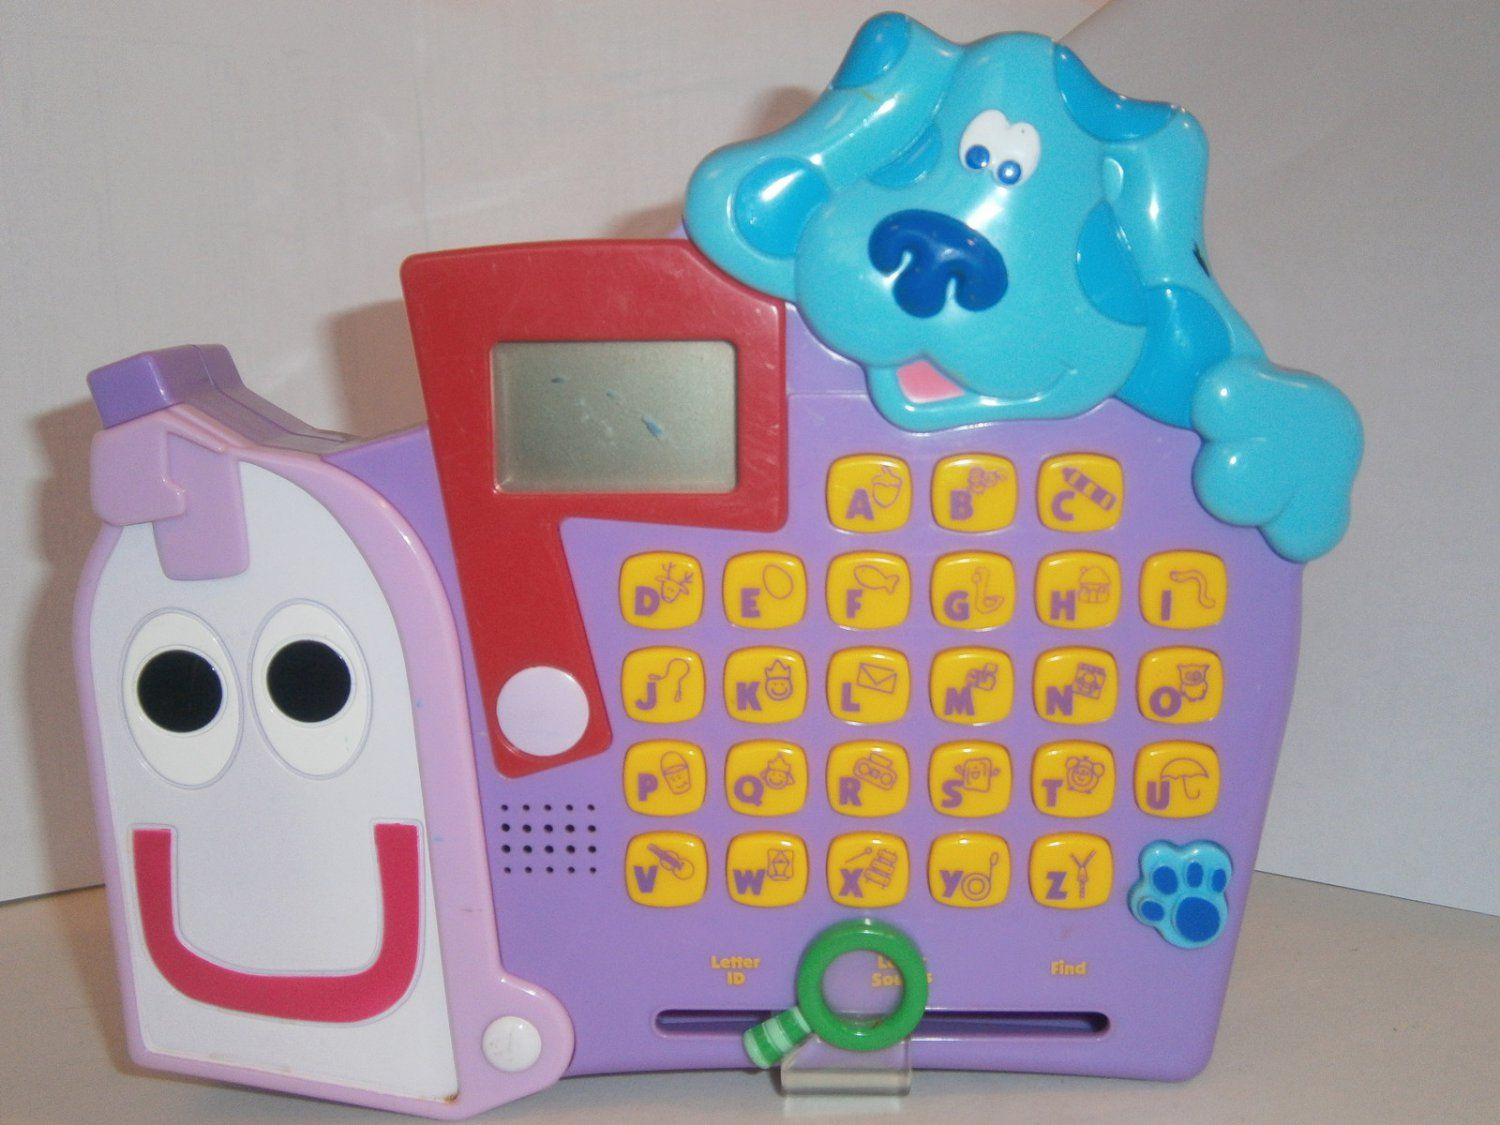 Blue Clues Toys Used Blue' Blues Toy Mailbox